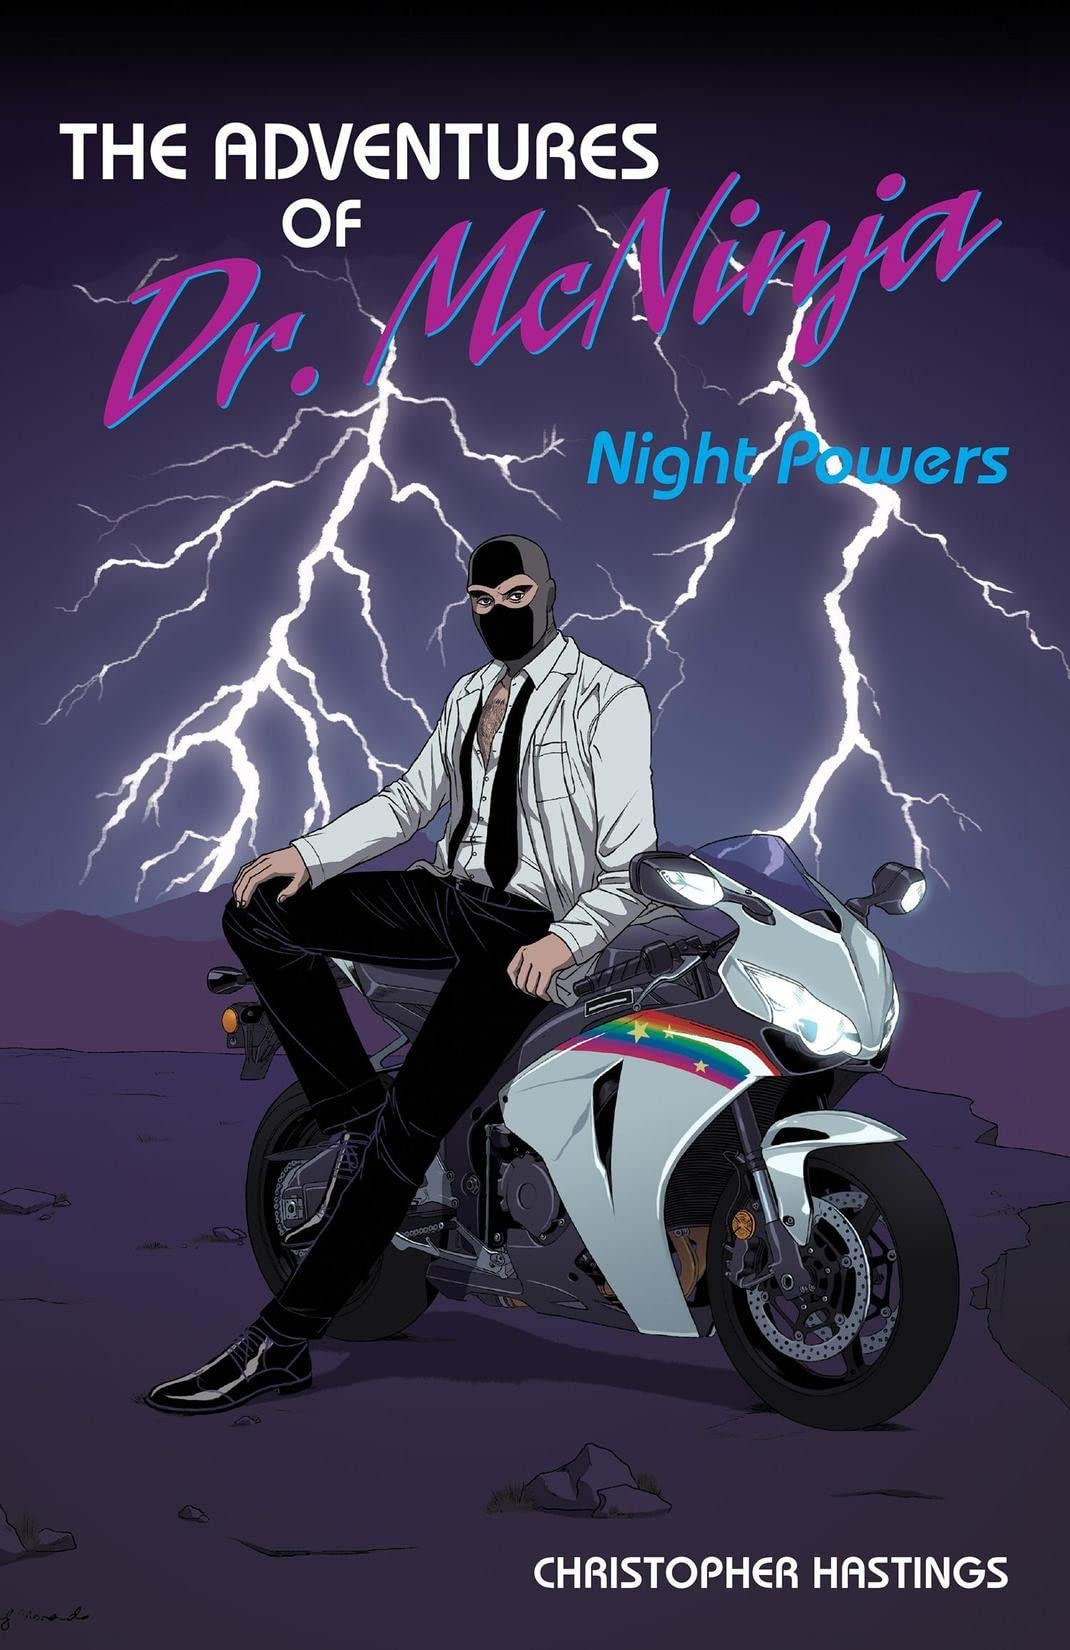 The Adventures of Dr. McNinja Vol. 1: Night Powers